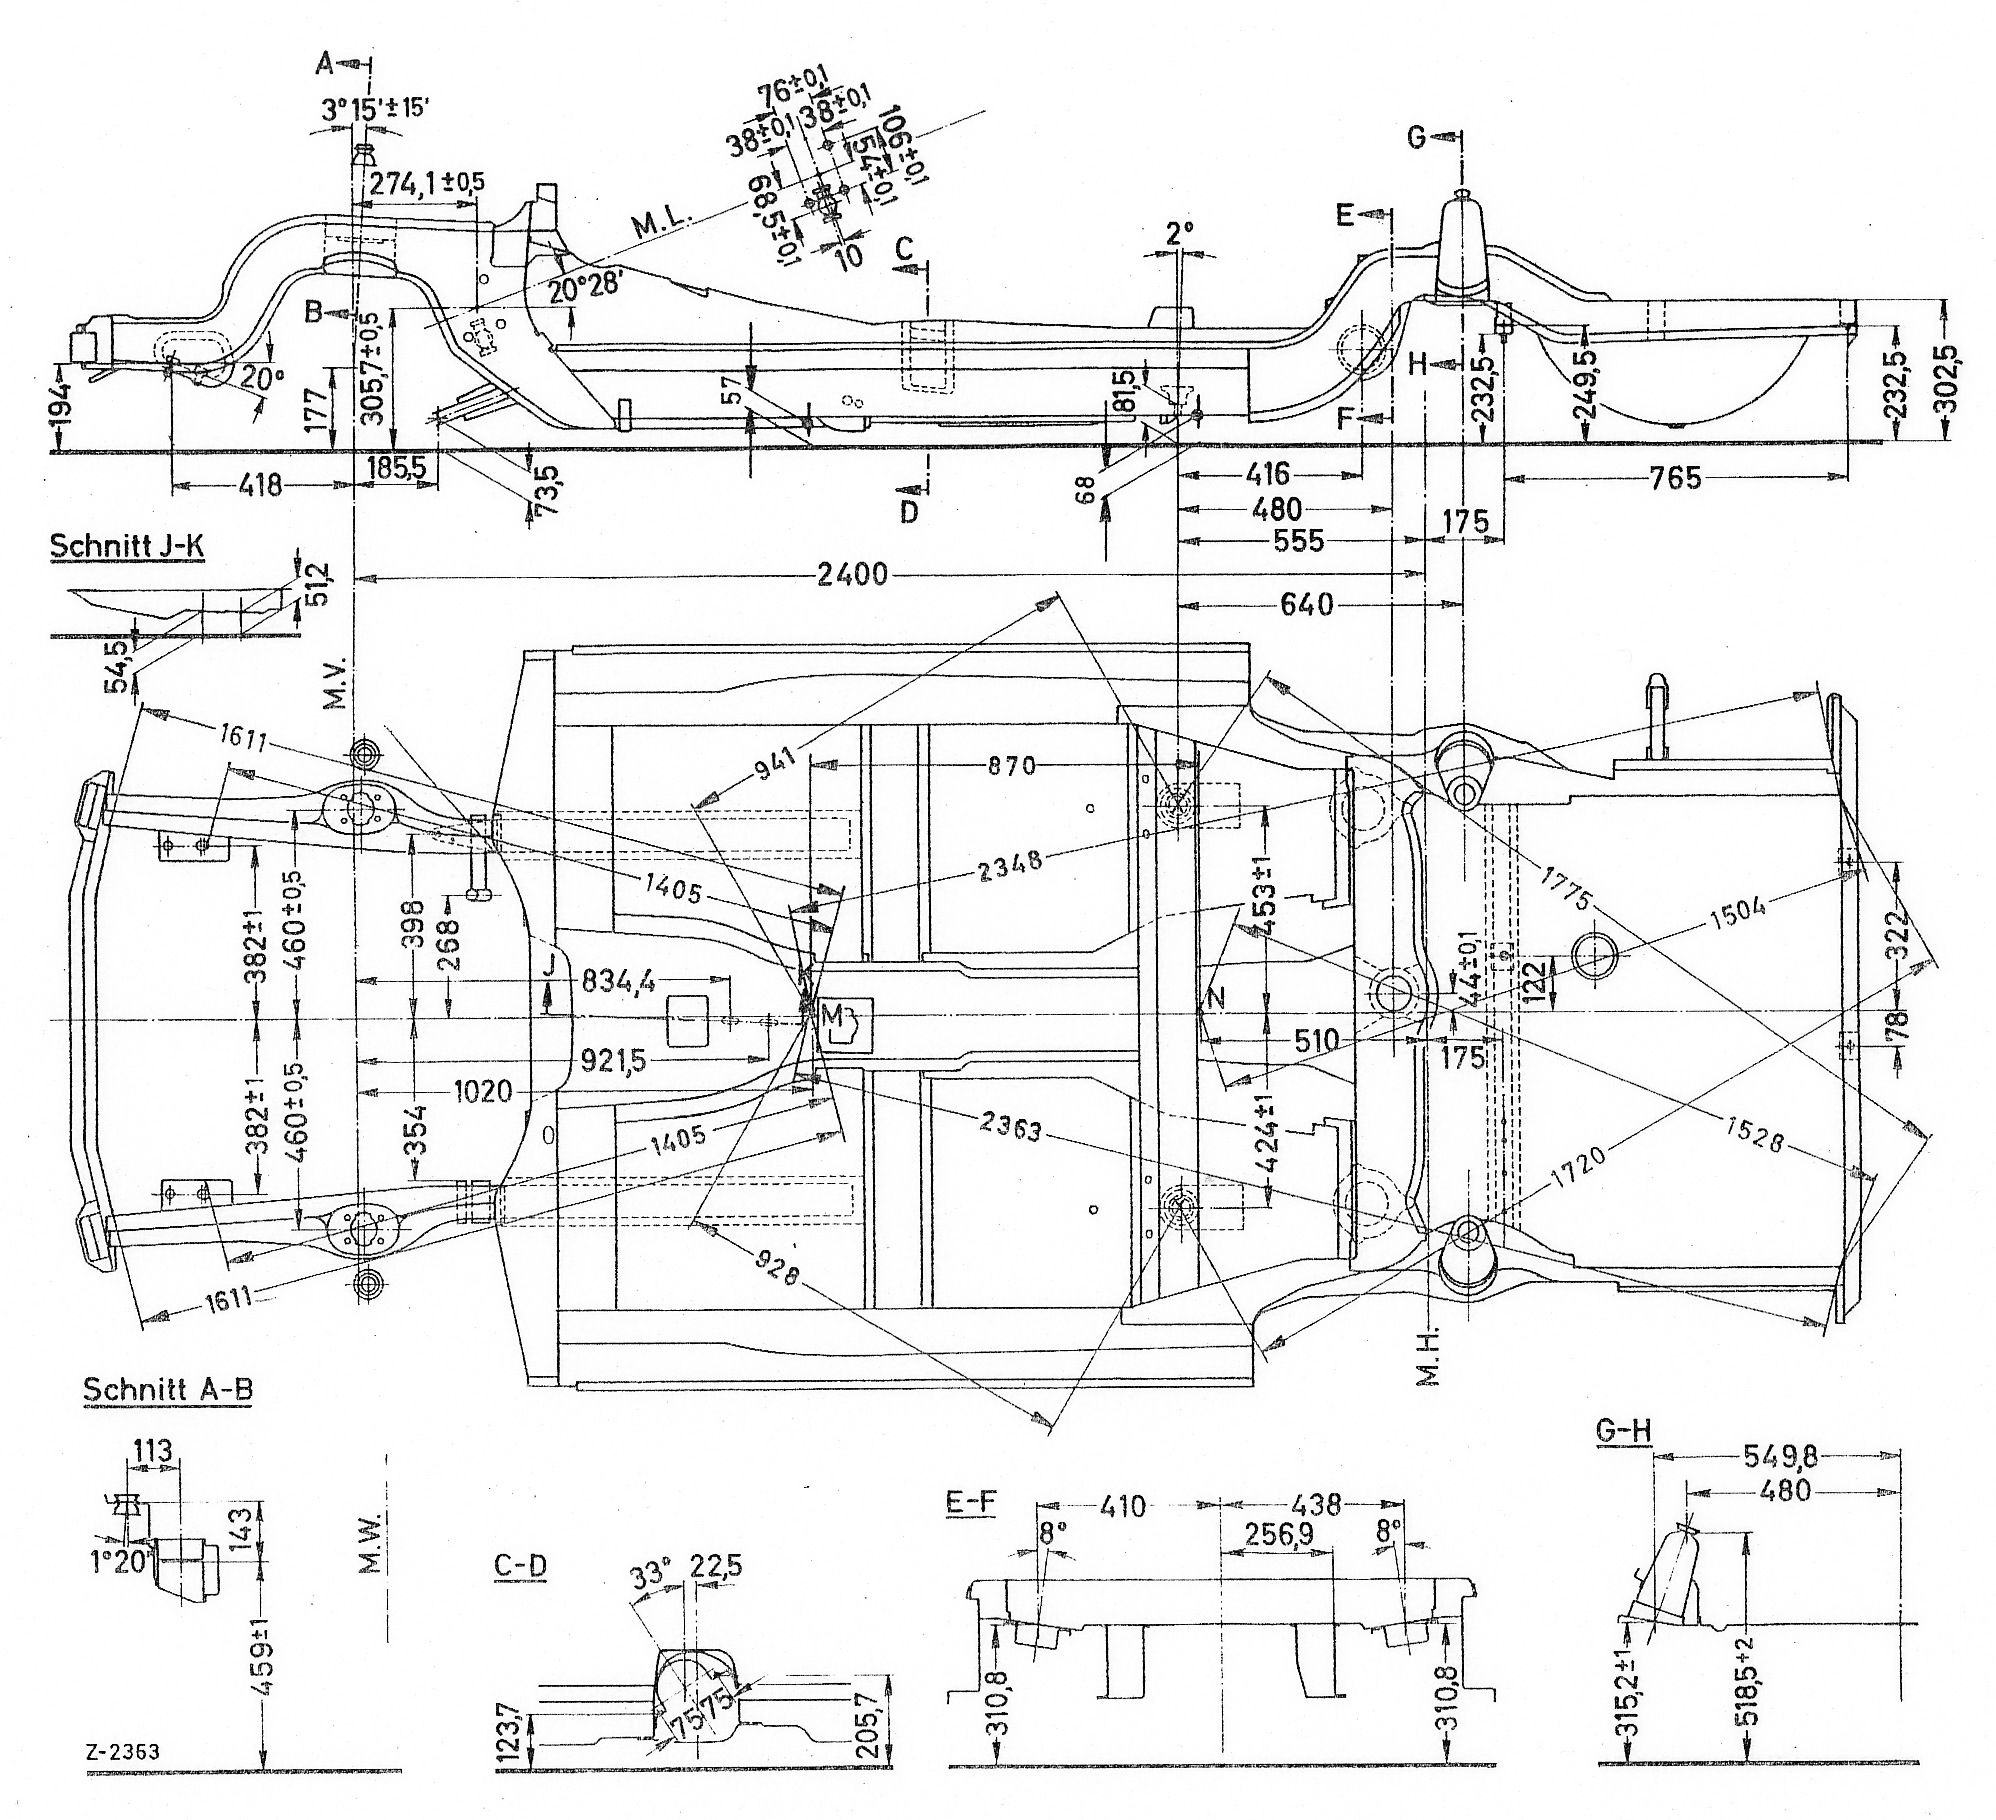 Pagoda Sl Group Technical Manual Chassisbody Chassis